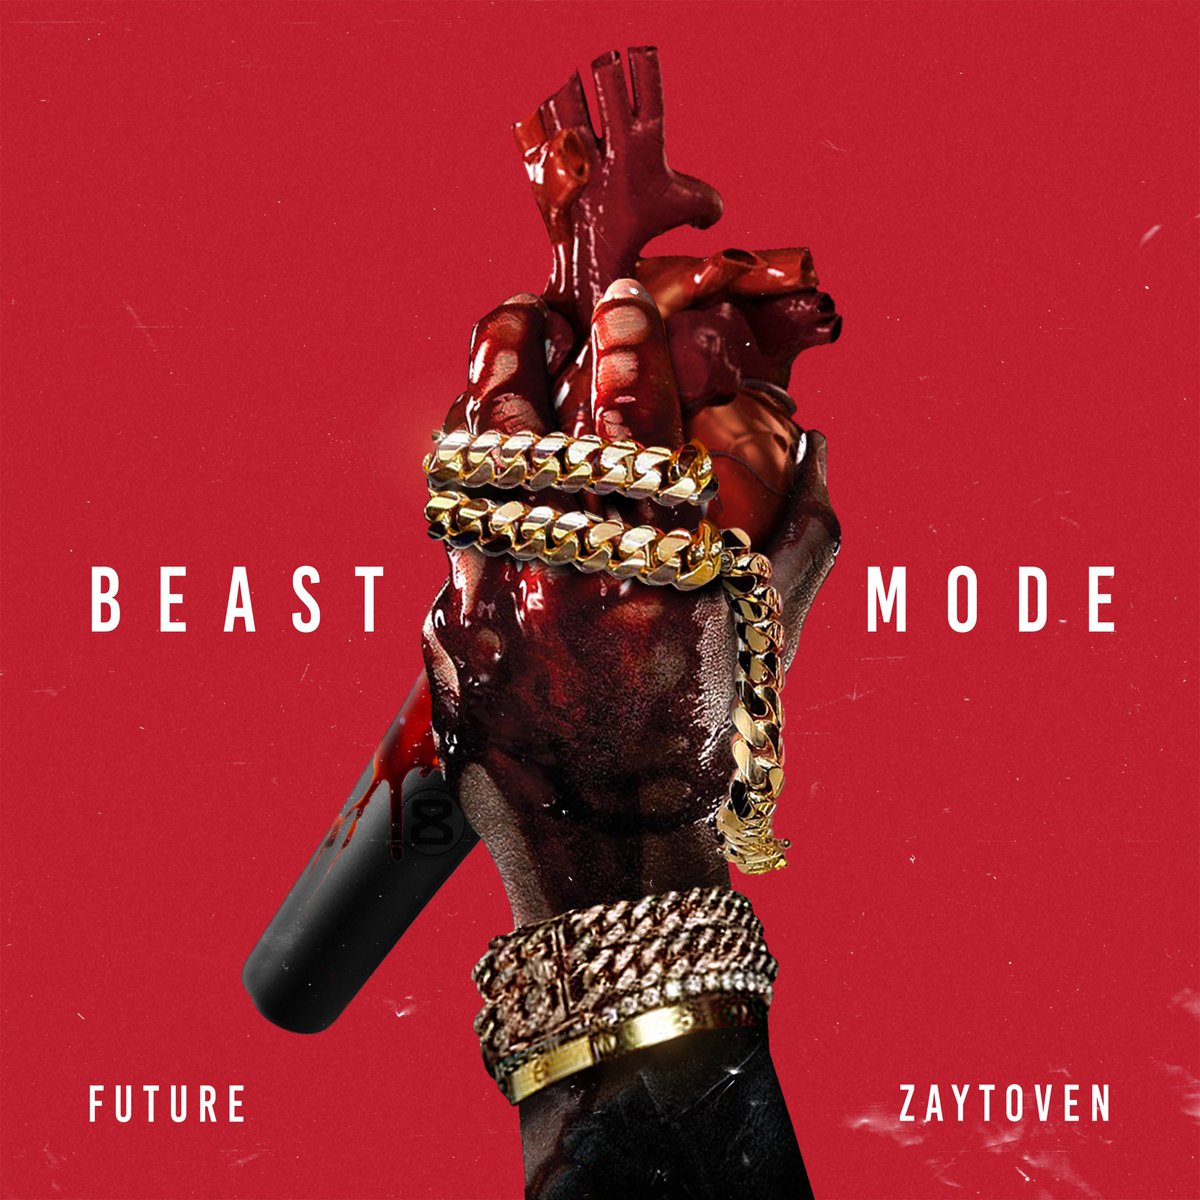 @1future's photo on Beast Mode